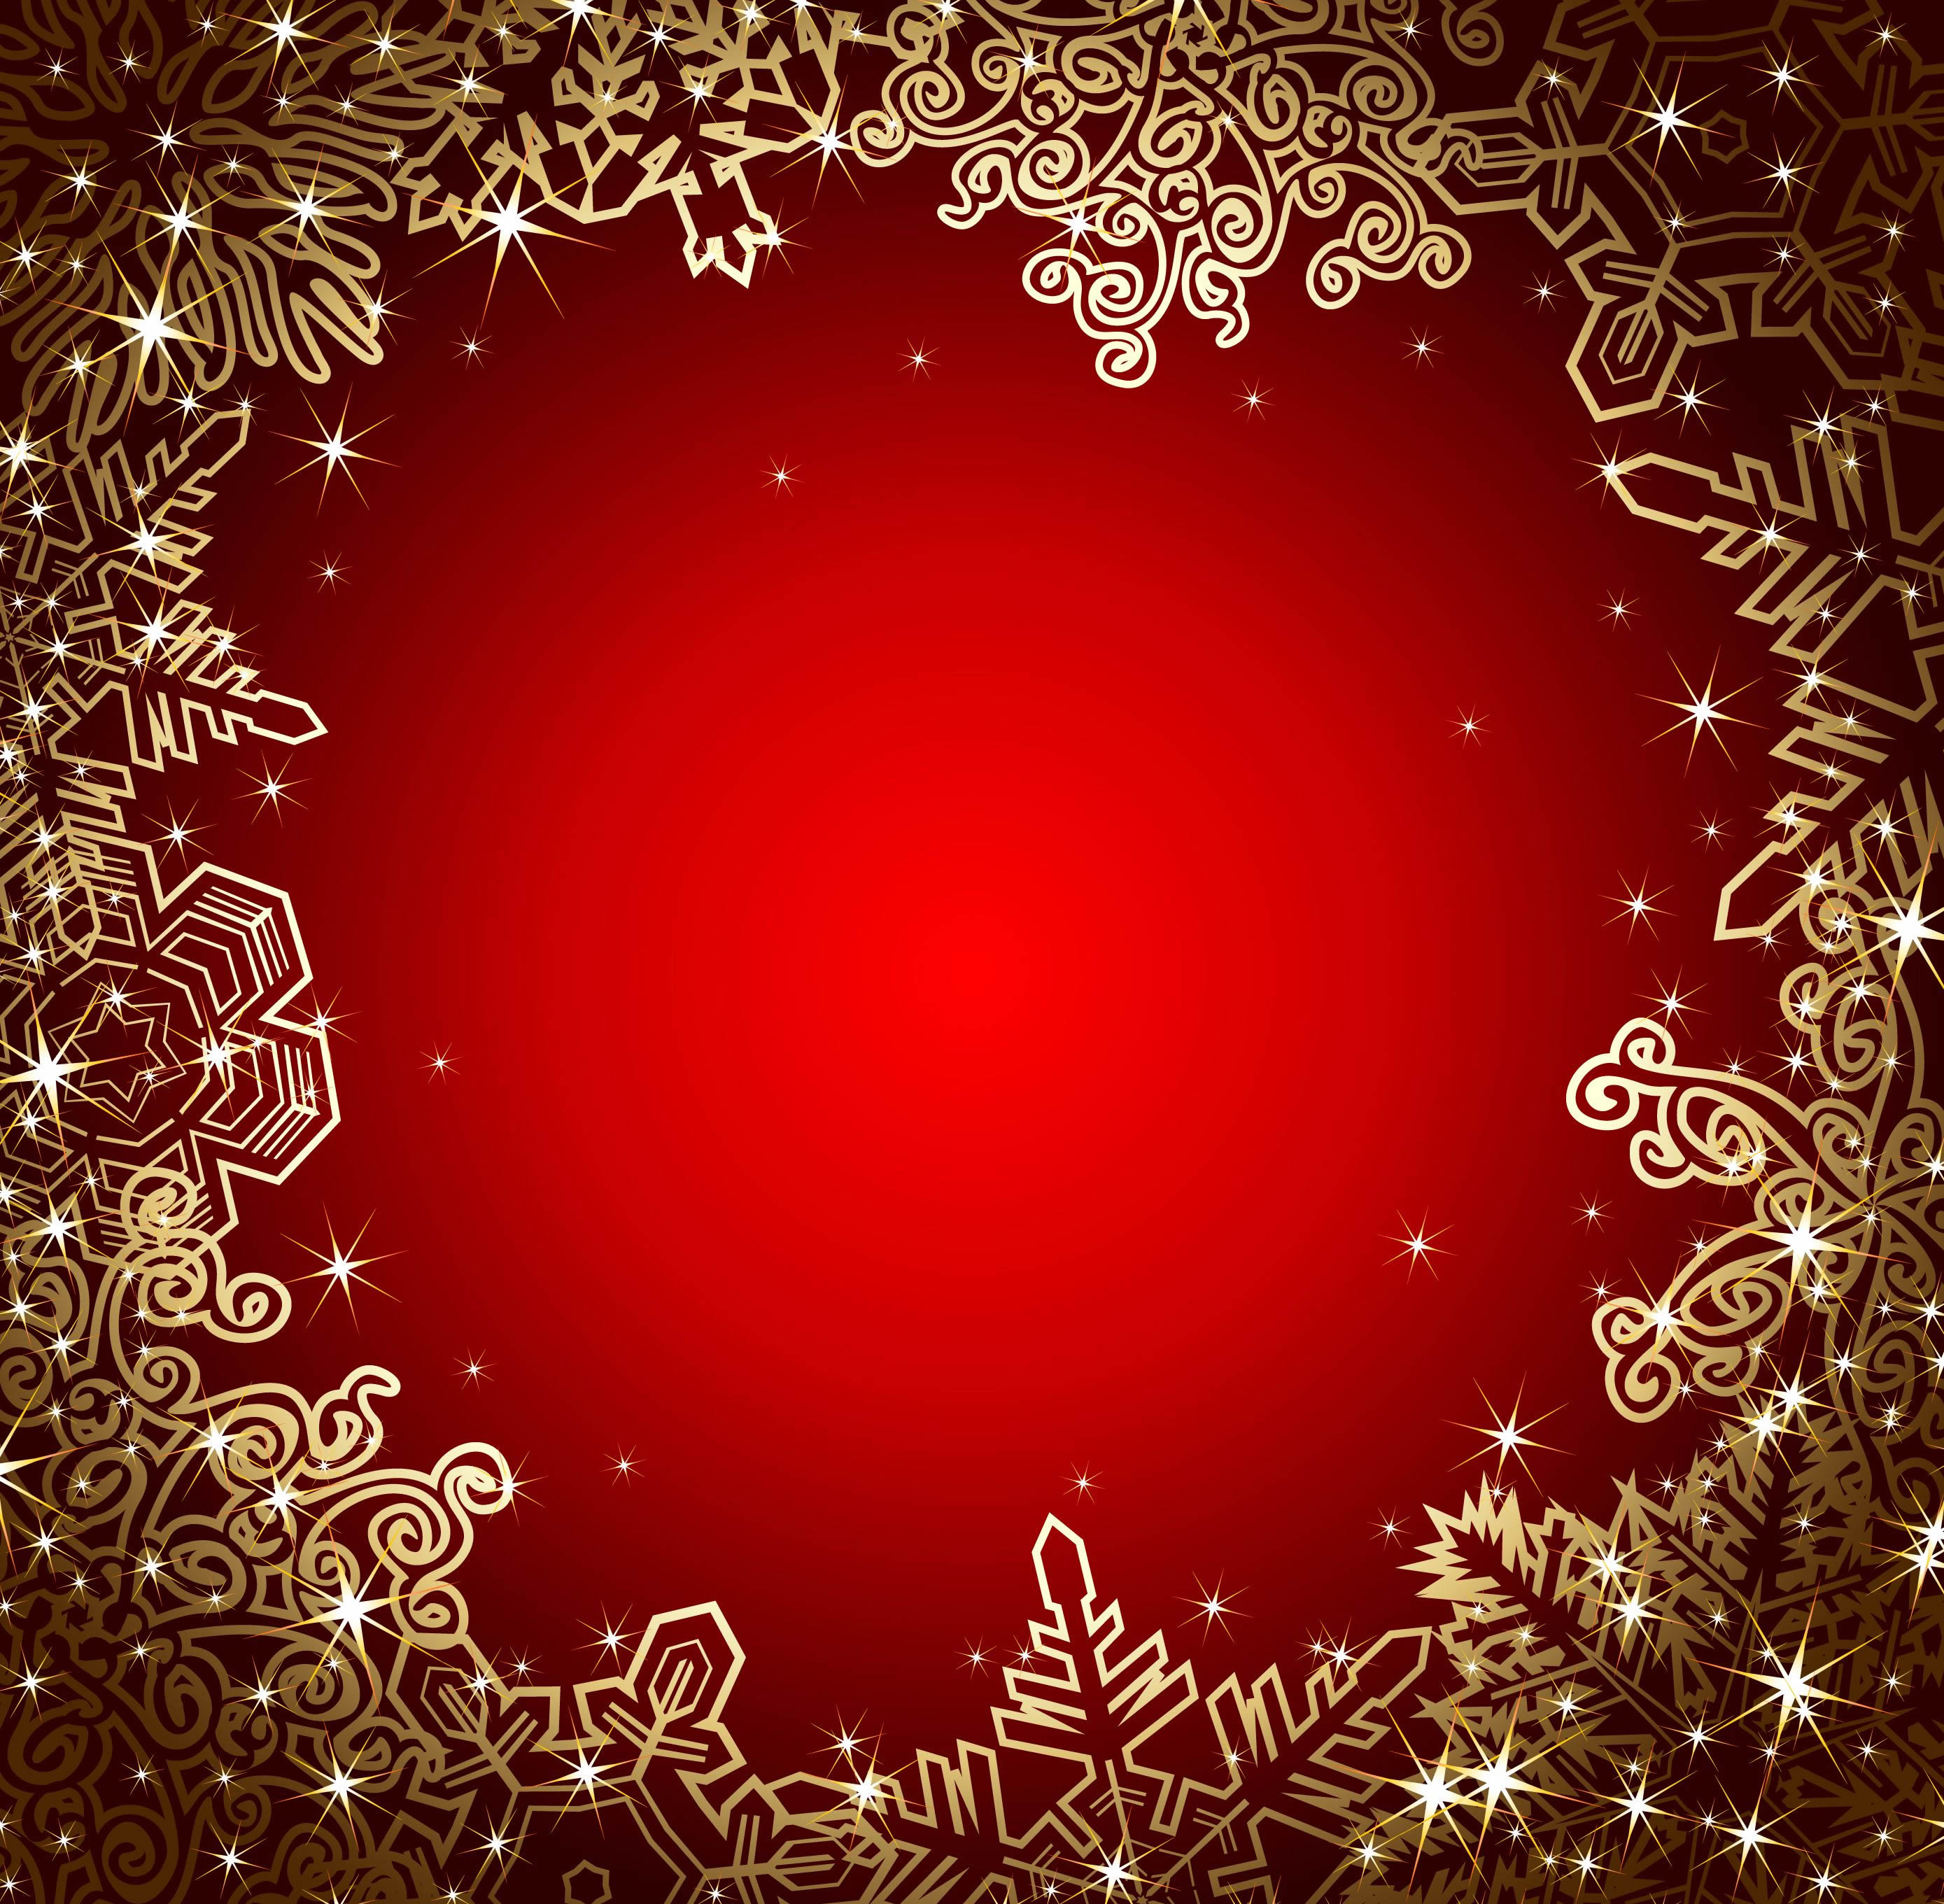 Christmas Textures.Textures New Year Christmas Texture Christmas And New